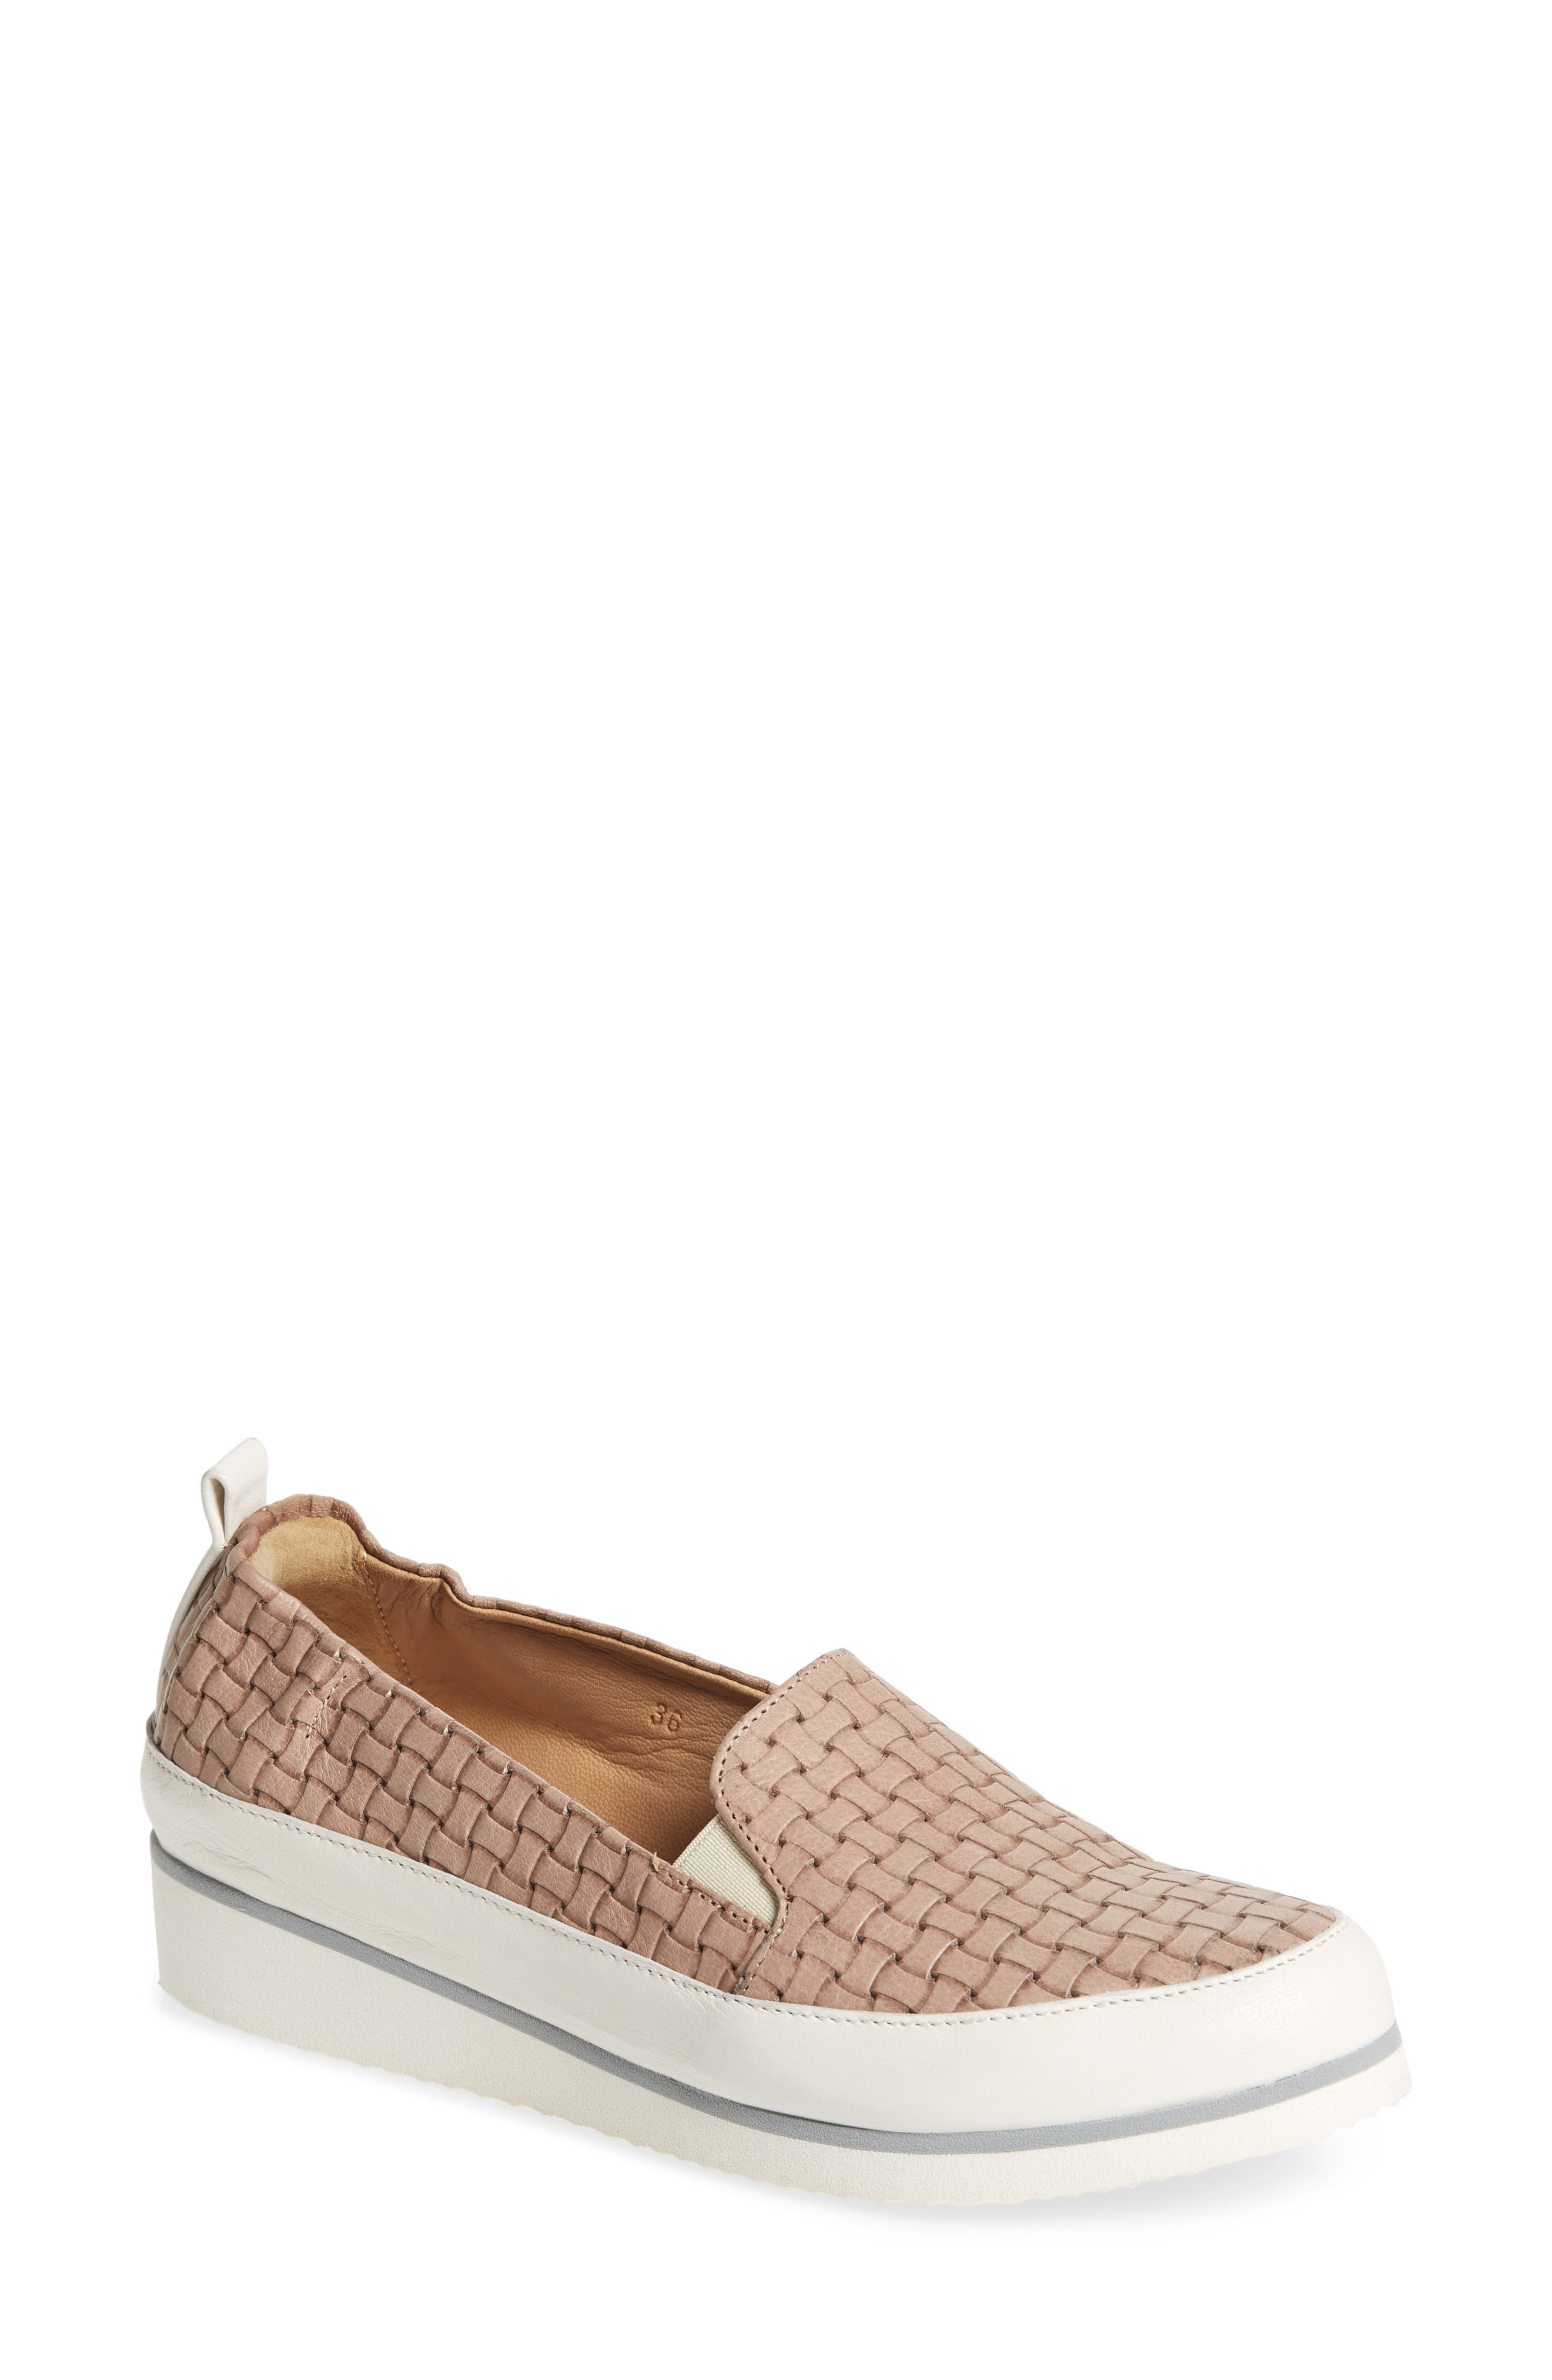 Nell Slip-On Sneaker,                             Main thumbnail 2, color,